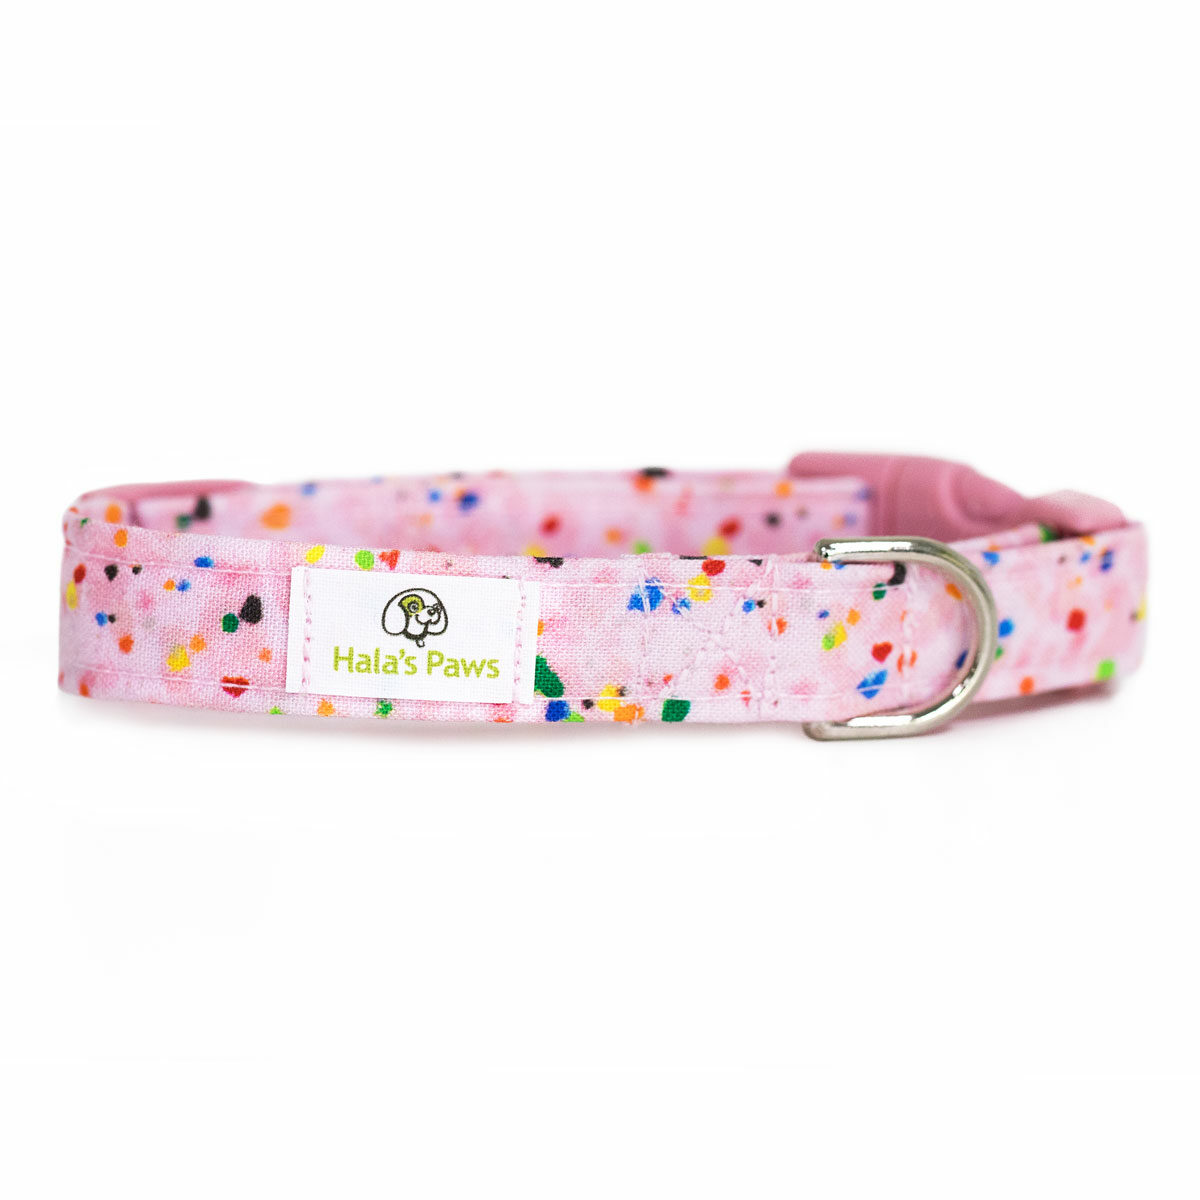 Hala's Paws Collar Light Pink Confetti